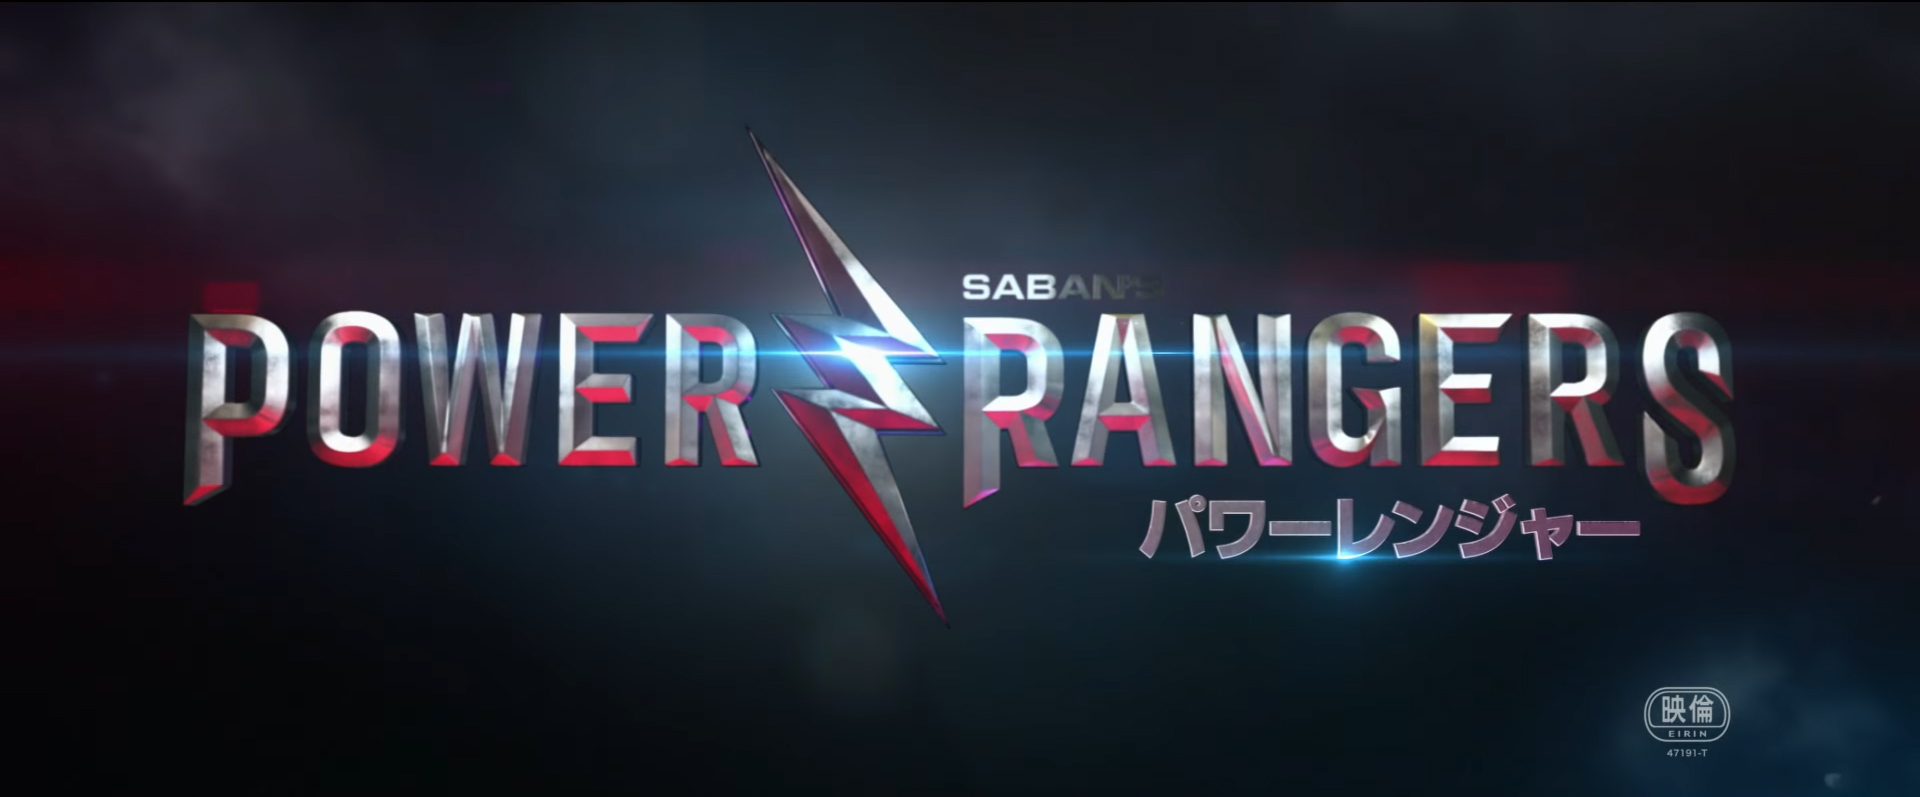 Japan's Reaction to the Power Rangers Movie Trailers